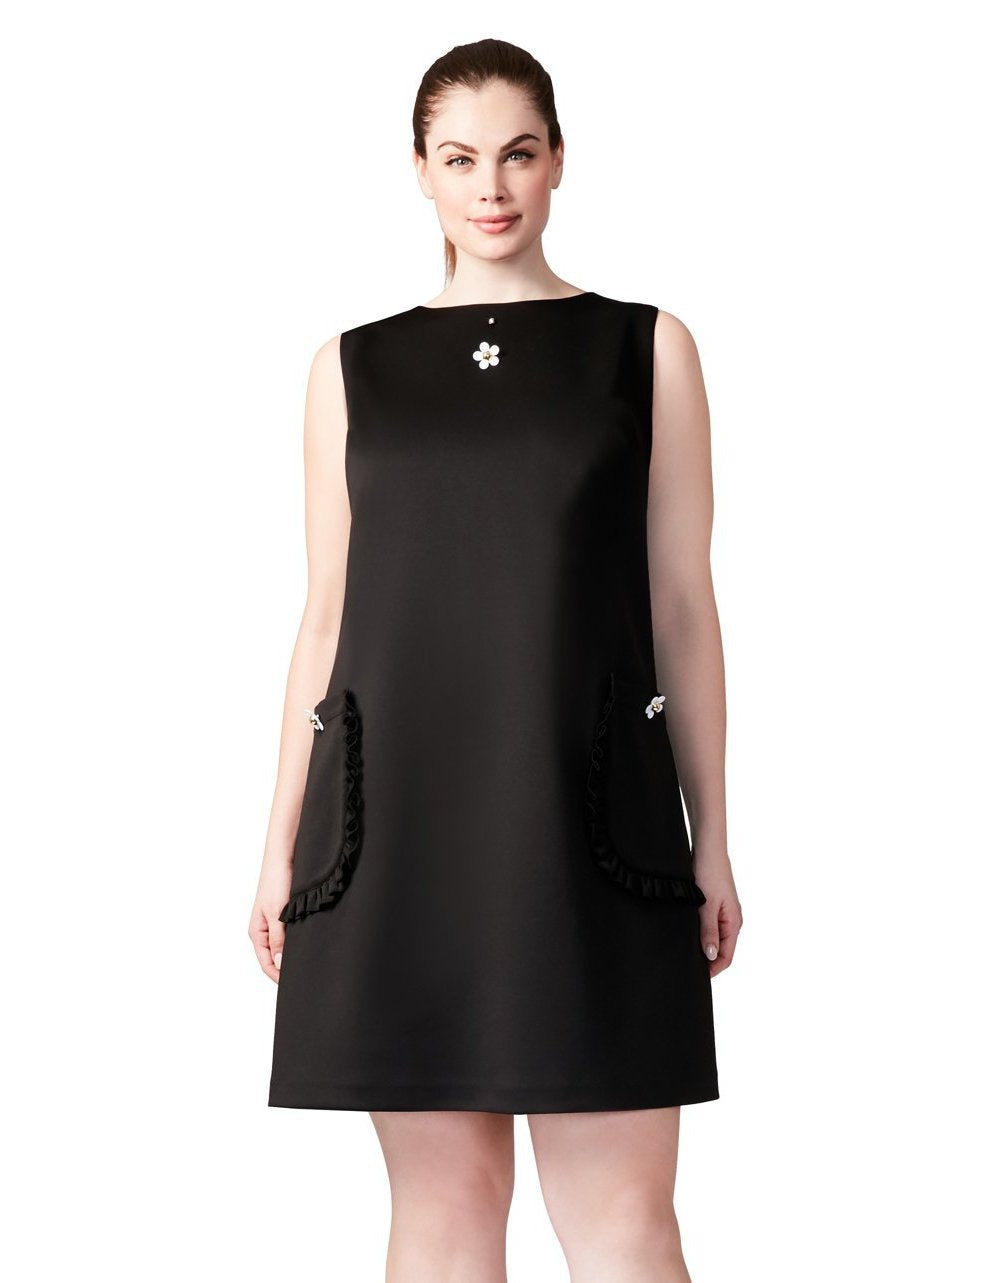 TOTALLY TECHNO DRESS BLACK (EXTENDED SIZING) - APPAREL - Betsey Johnson